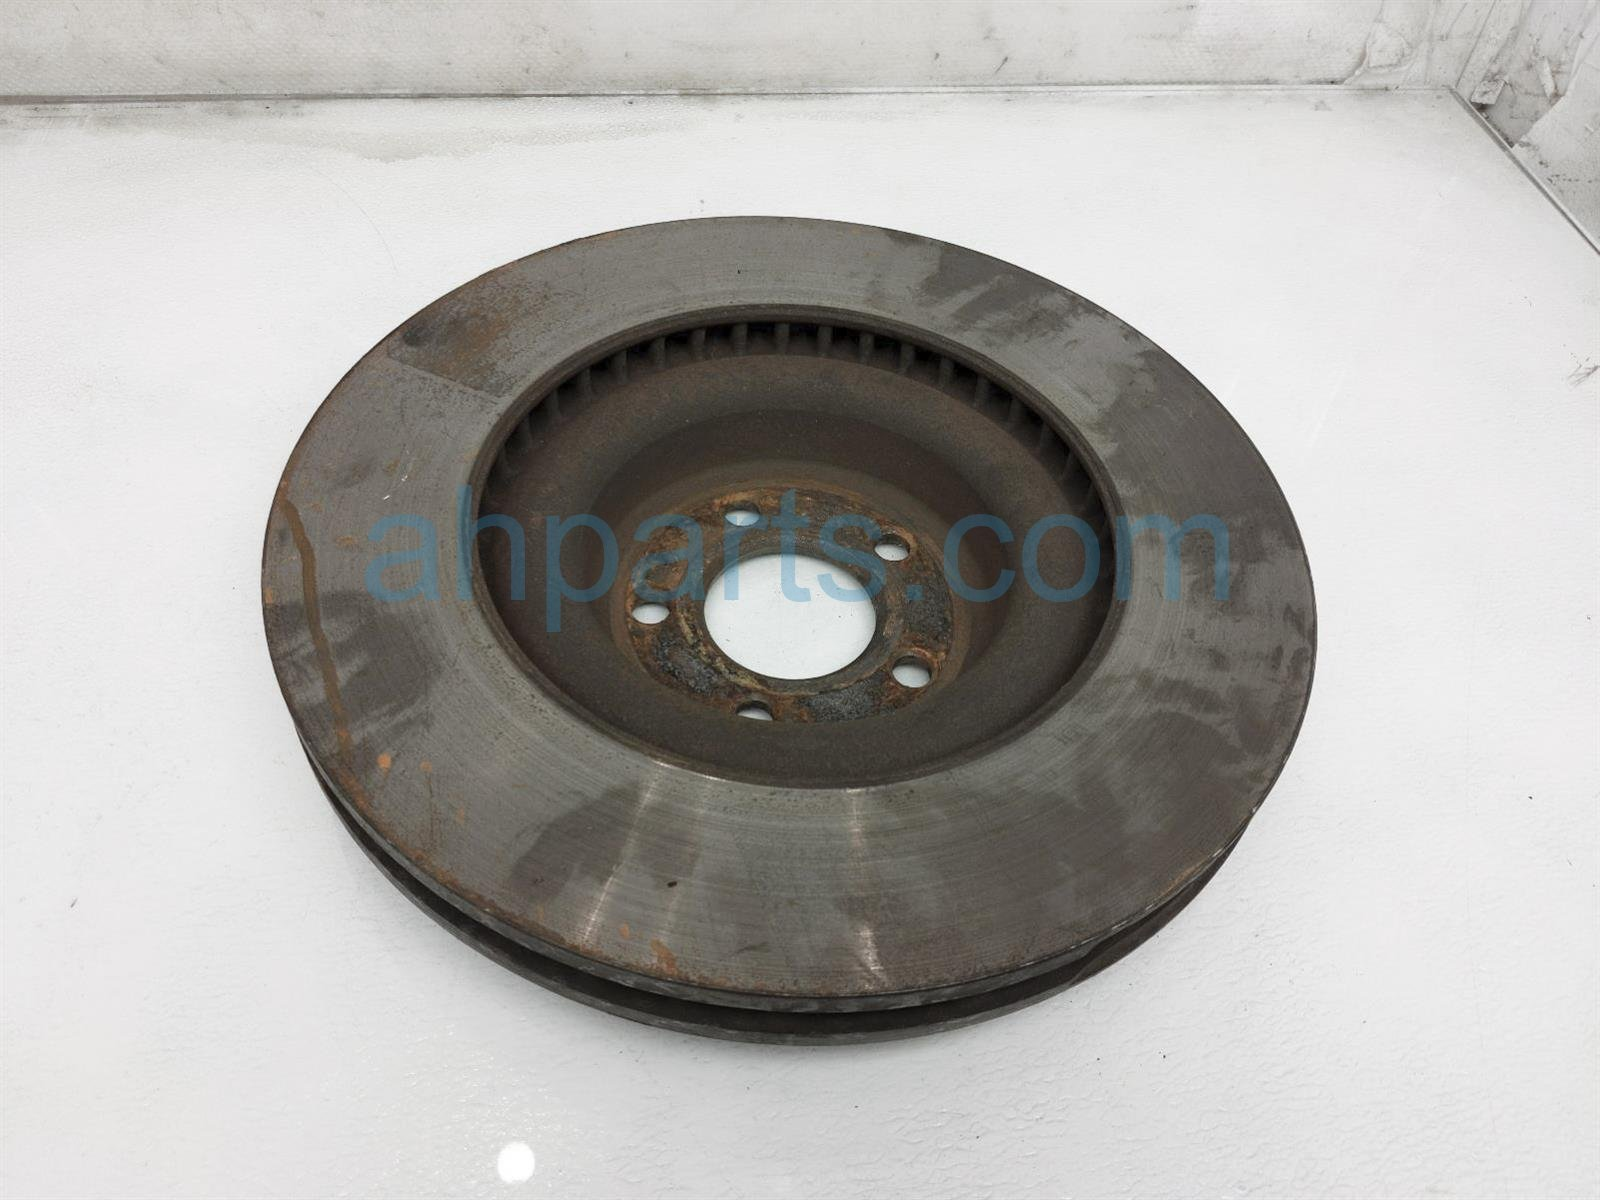 2017 Ford Mustang Front Driver Brake Rotor Performance Pkg GR3Z 1125 L Replacement